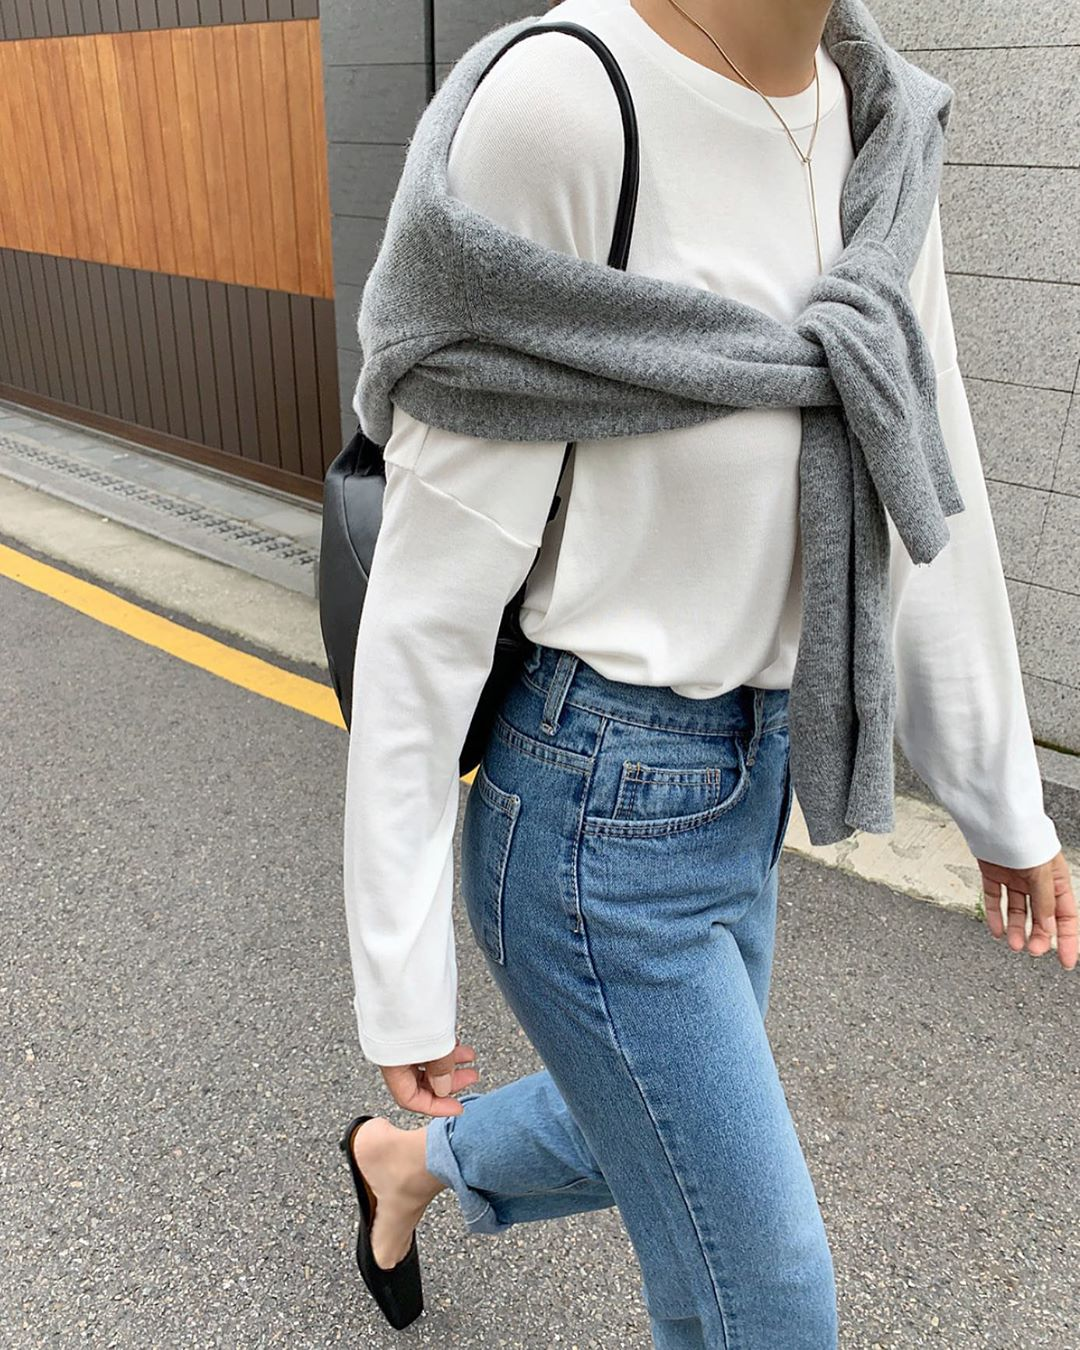 Fall Weekend Outfit Inspiration — Gray Sweater Tied Over The Shoulder, White Tee, Jeans, Black Mules